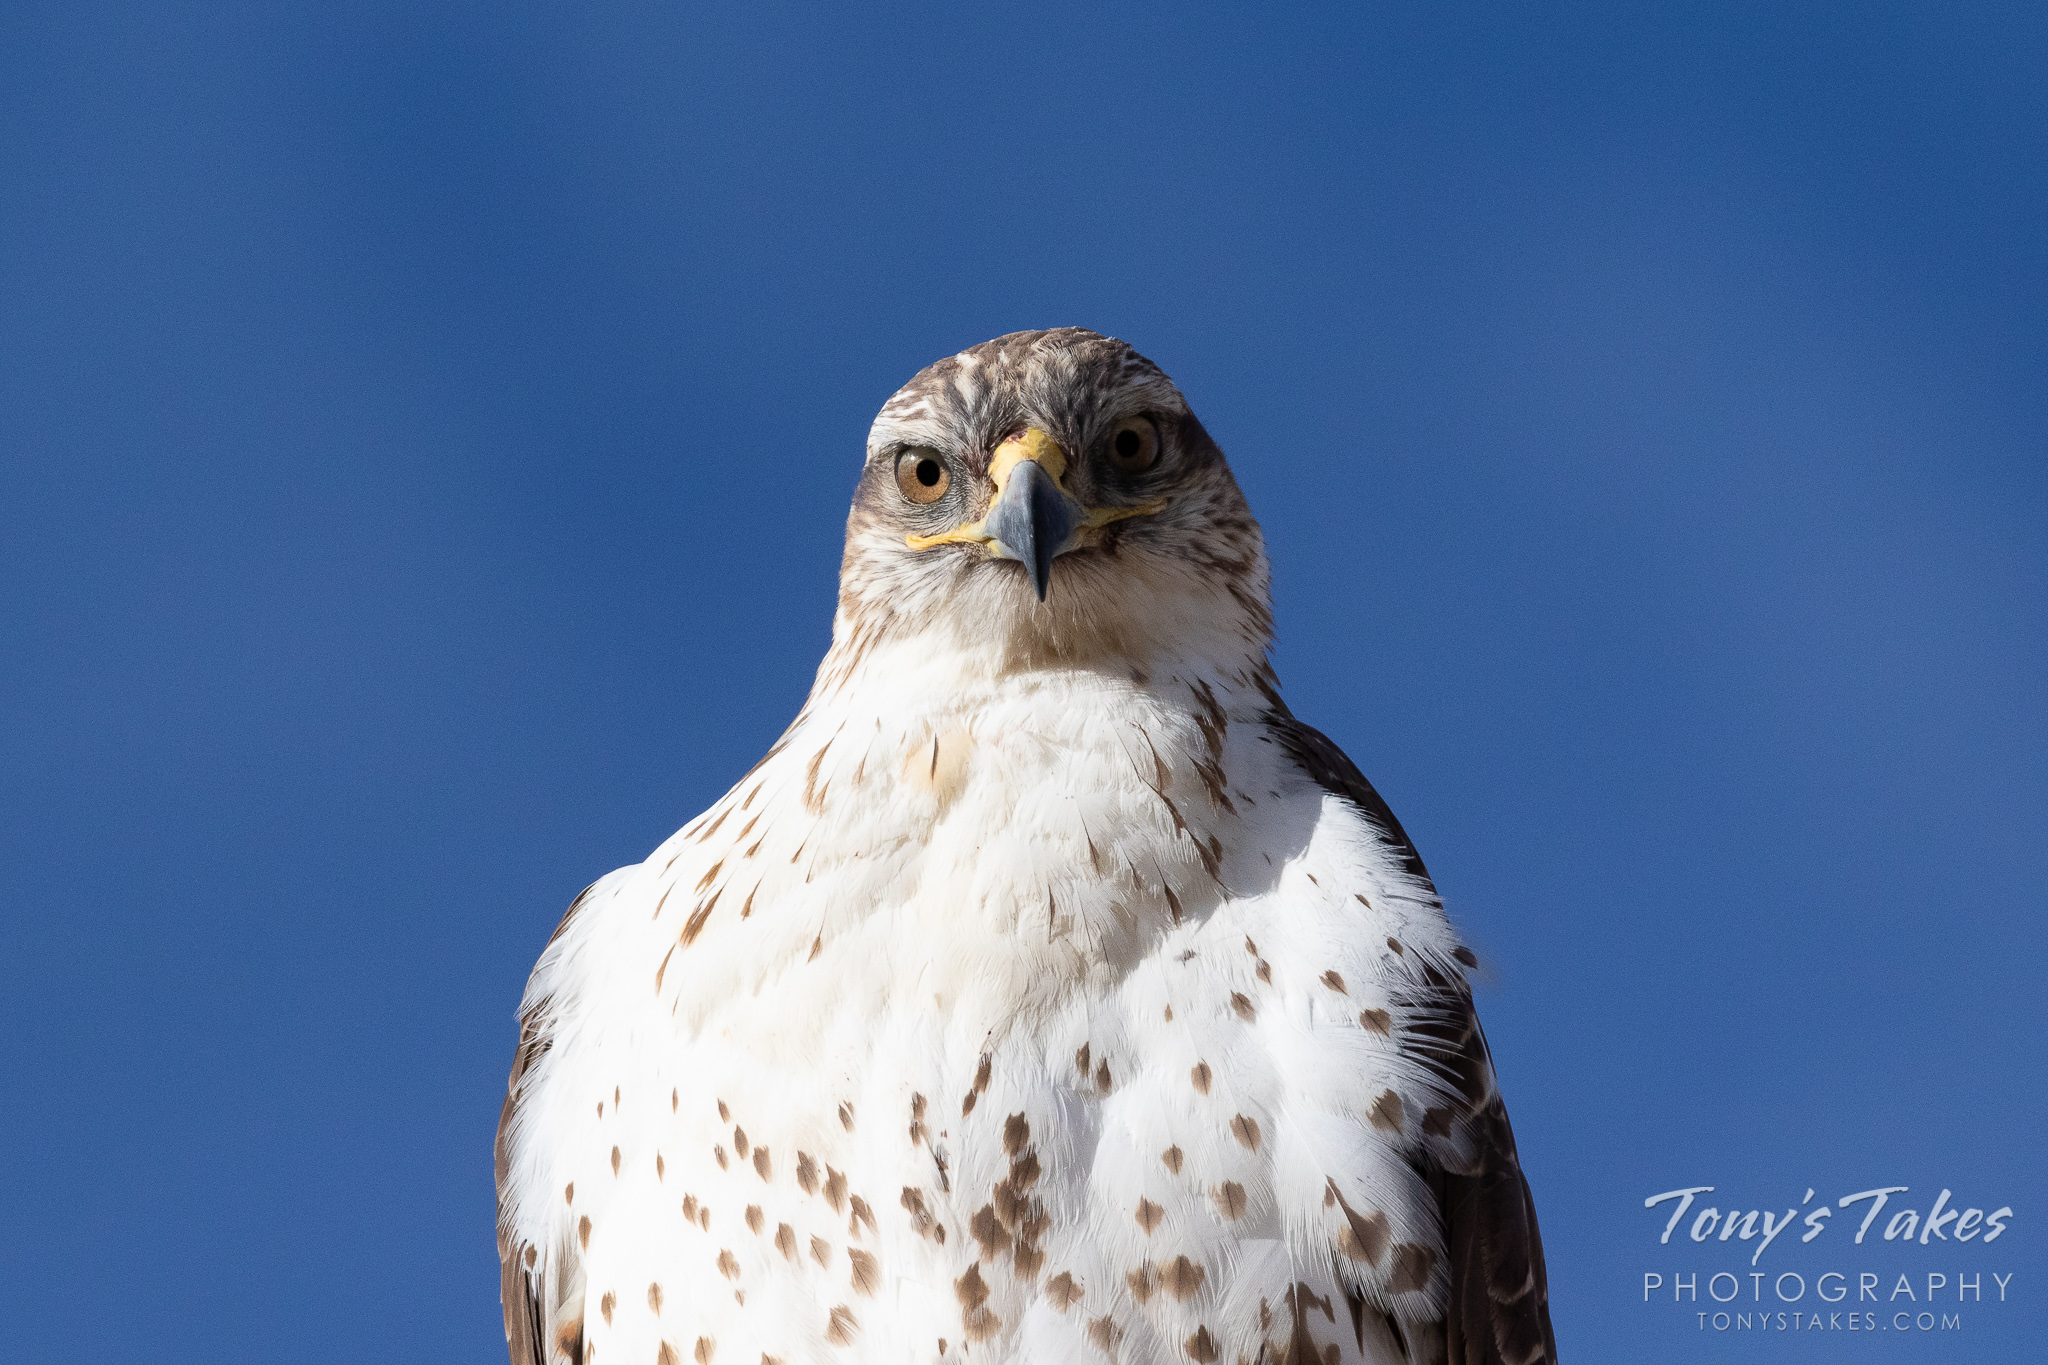 Focused face of a ferruginous